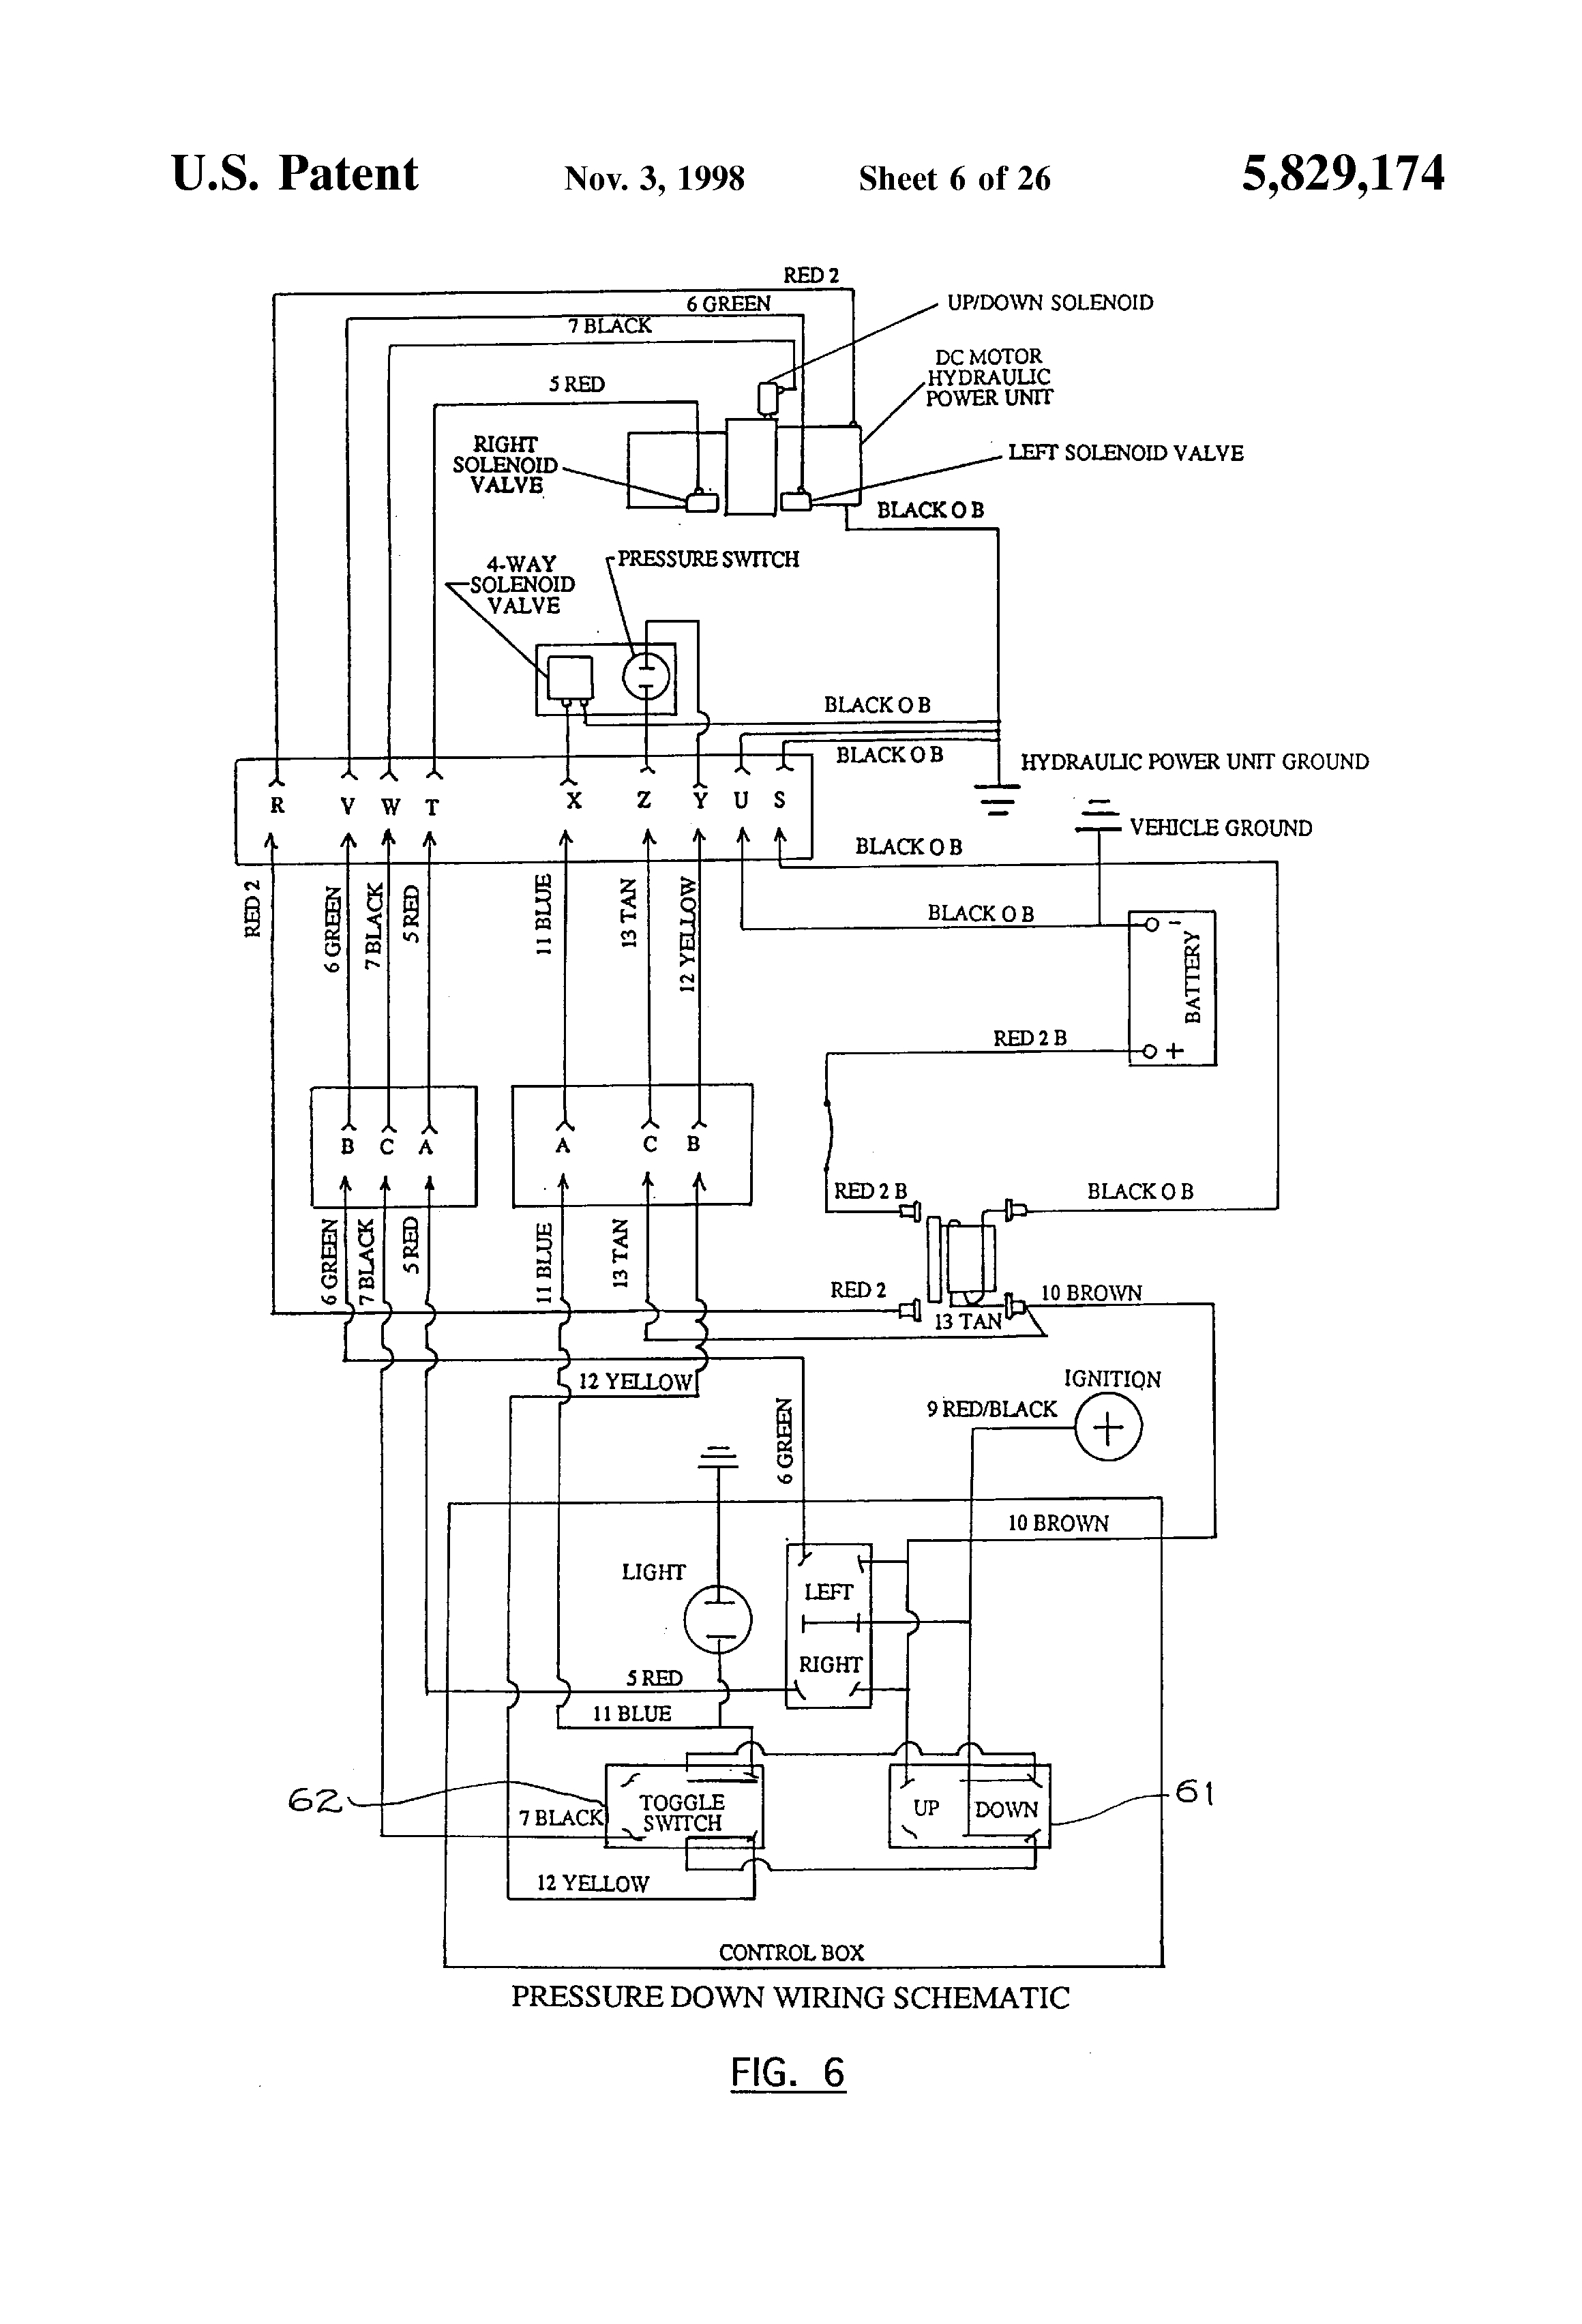 monarch snow plow pump wiring diagram Collection-Snow Plow Wiring Diagram  Elegant Famous Plow solenoid